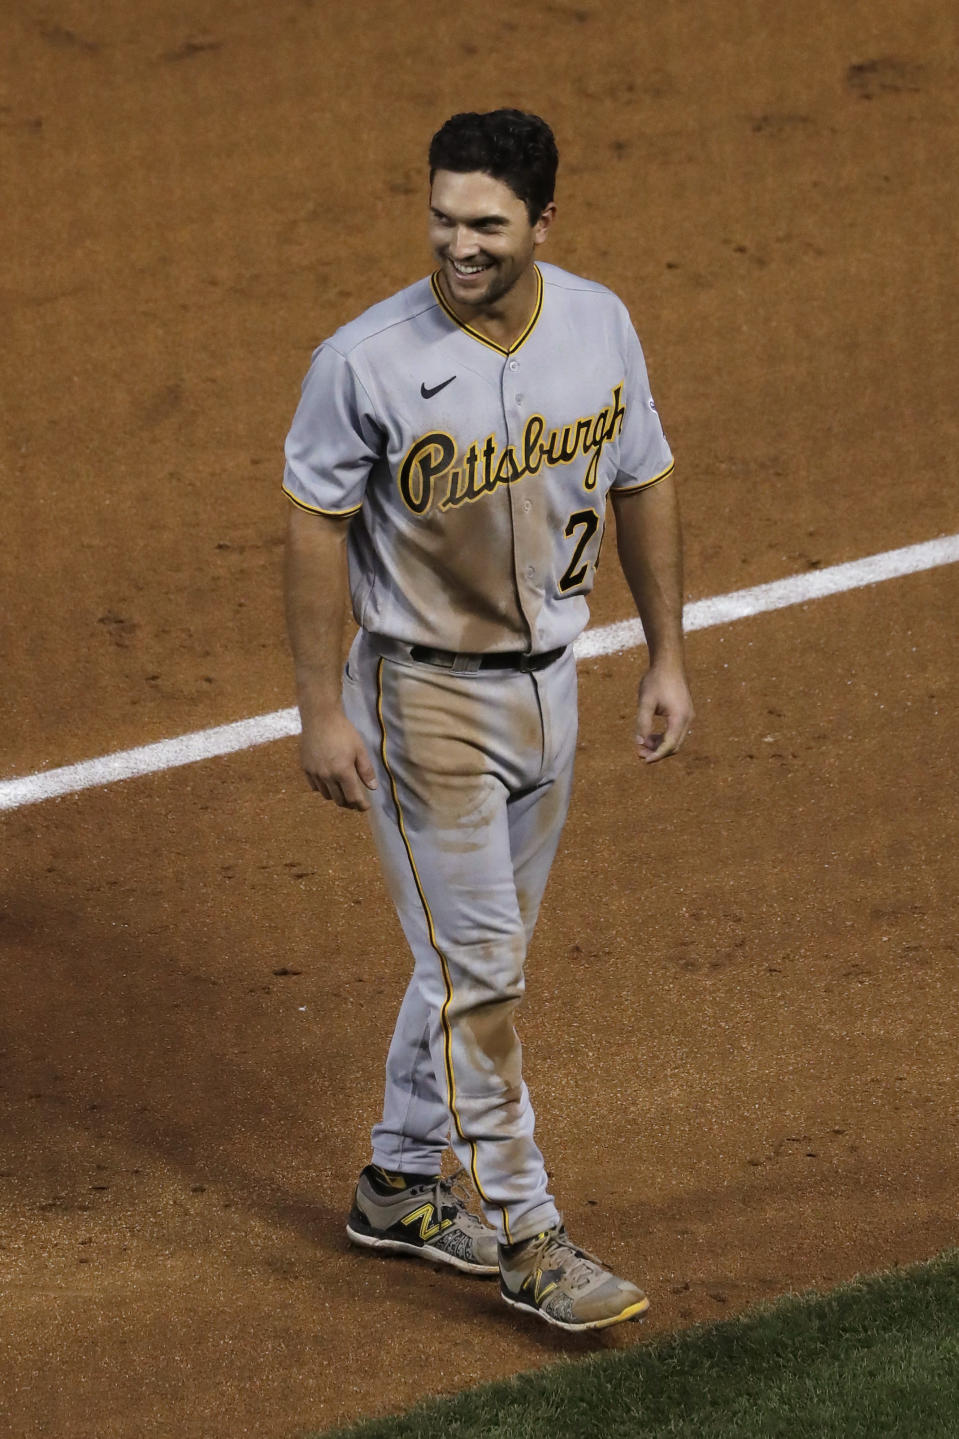 Pittsburgh Pirates' Adam Frazier smiles as he walks to the dugout during the third inning of the team's baseball game against the Chicago Cubs in Chicago, Saturday, Aug. 1, 2020. (AP Photo/Nam Y. Huh)